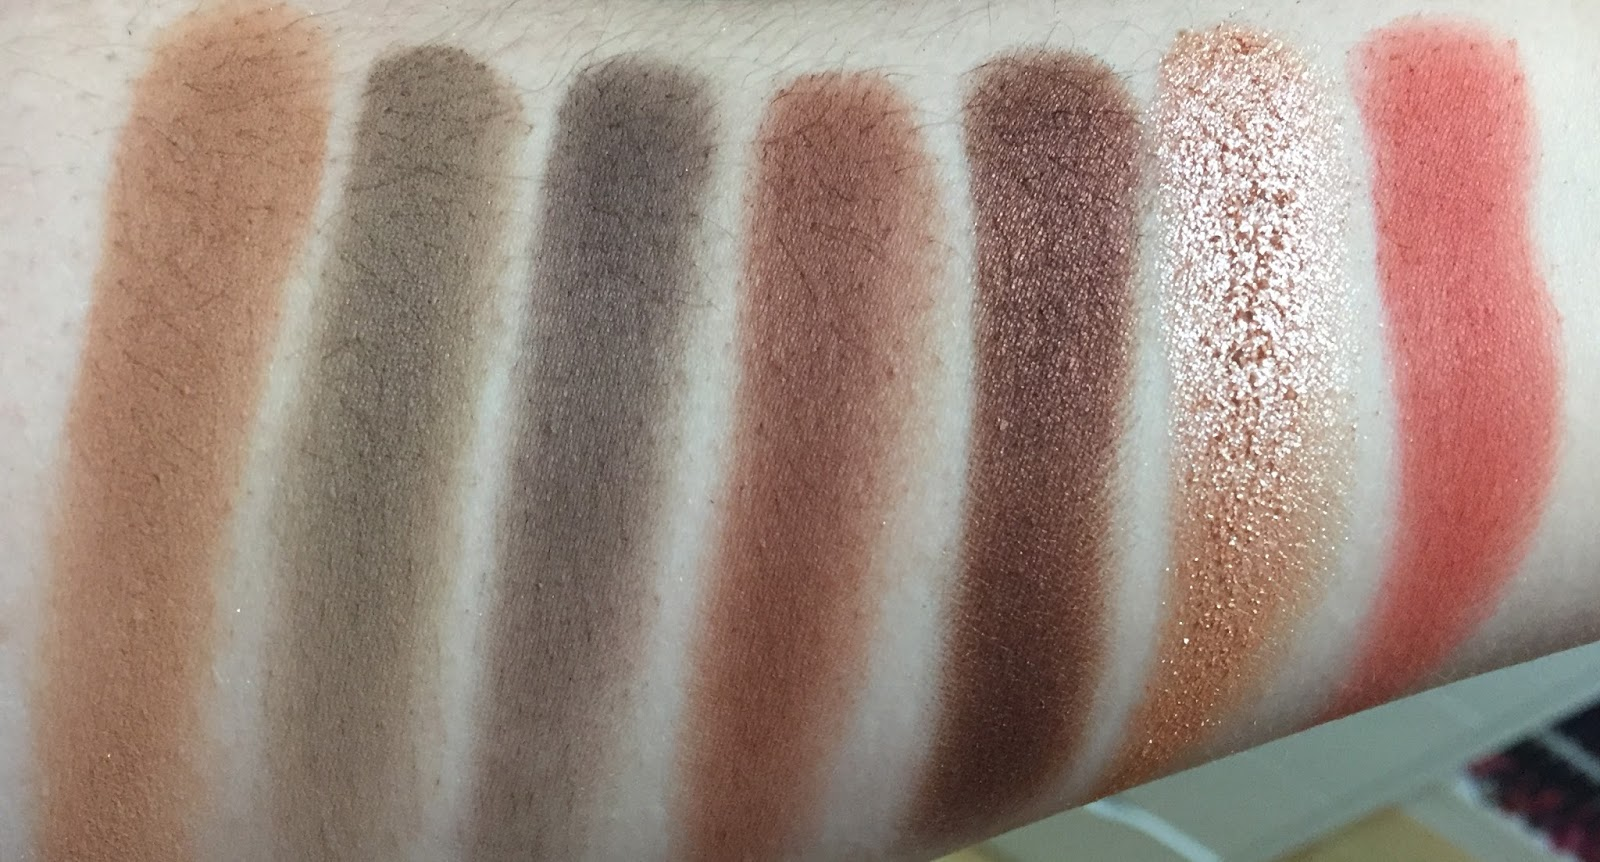 Nature Glow Artistry Palette - 35O by Morphe #5